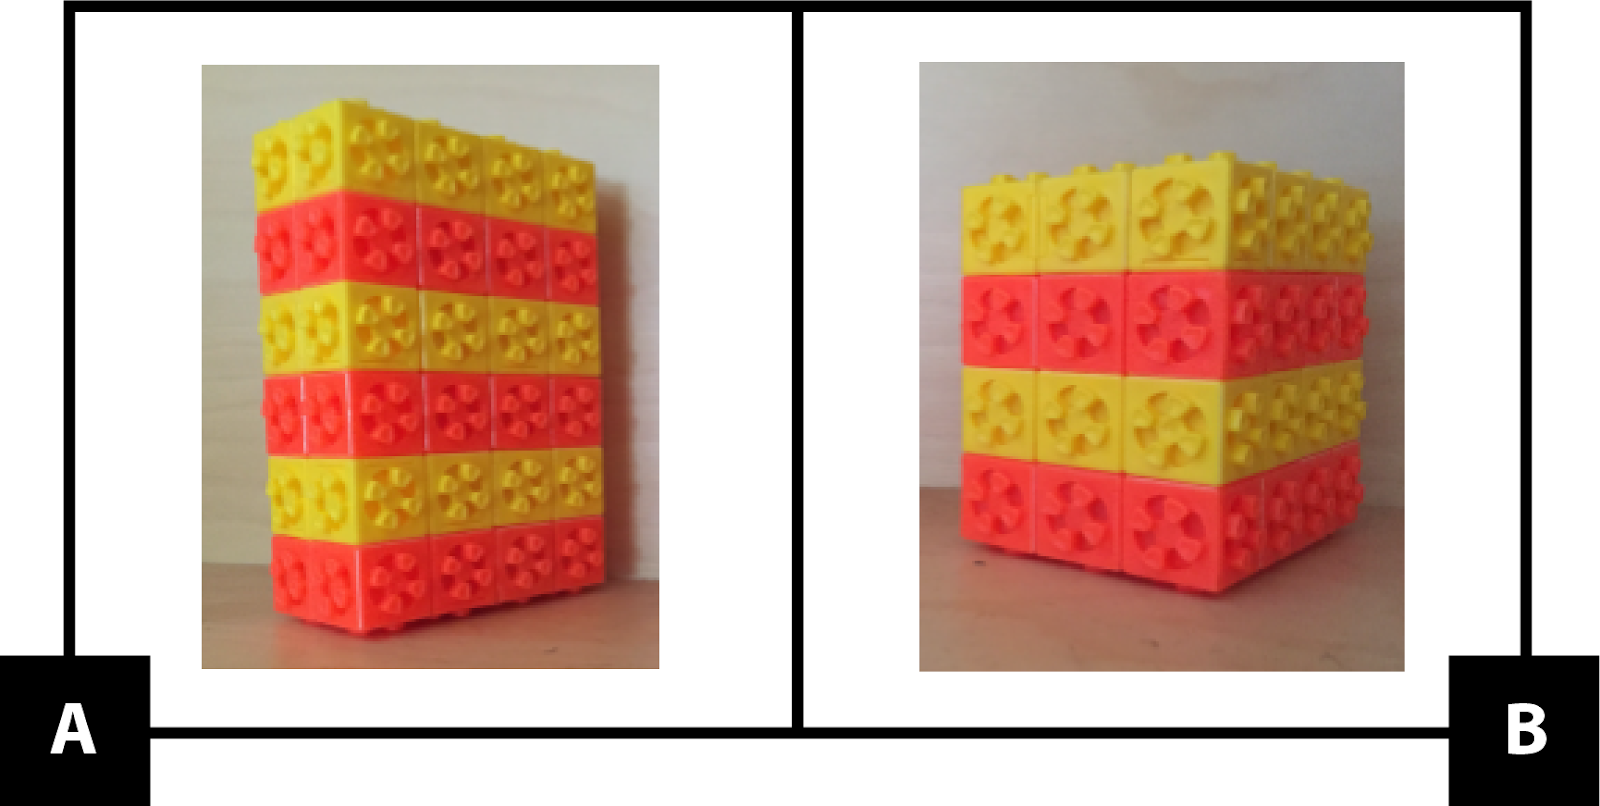 A: A rectangular prism made with unit cubes. It is 2 units long by 4 units wide by 6 units tall. The cubes alternate colors in layers: yellow, orange, yellow, orange, yellow, orange. B: A rectangular prism made with unit cubes. It is 3 units long by 4 units wide by 4 units tall. The cubes alternate colors in layers: yellow, orange, yellow, orange.